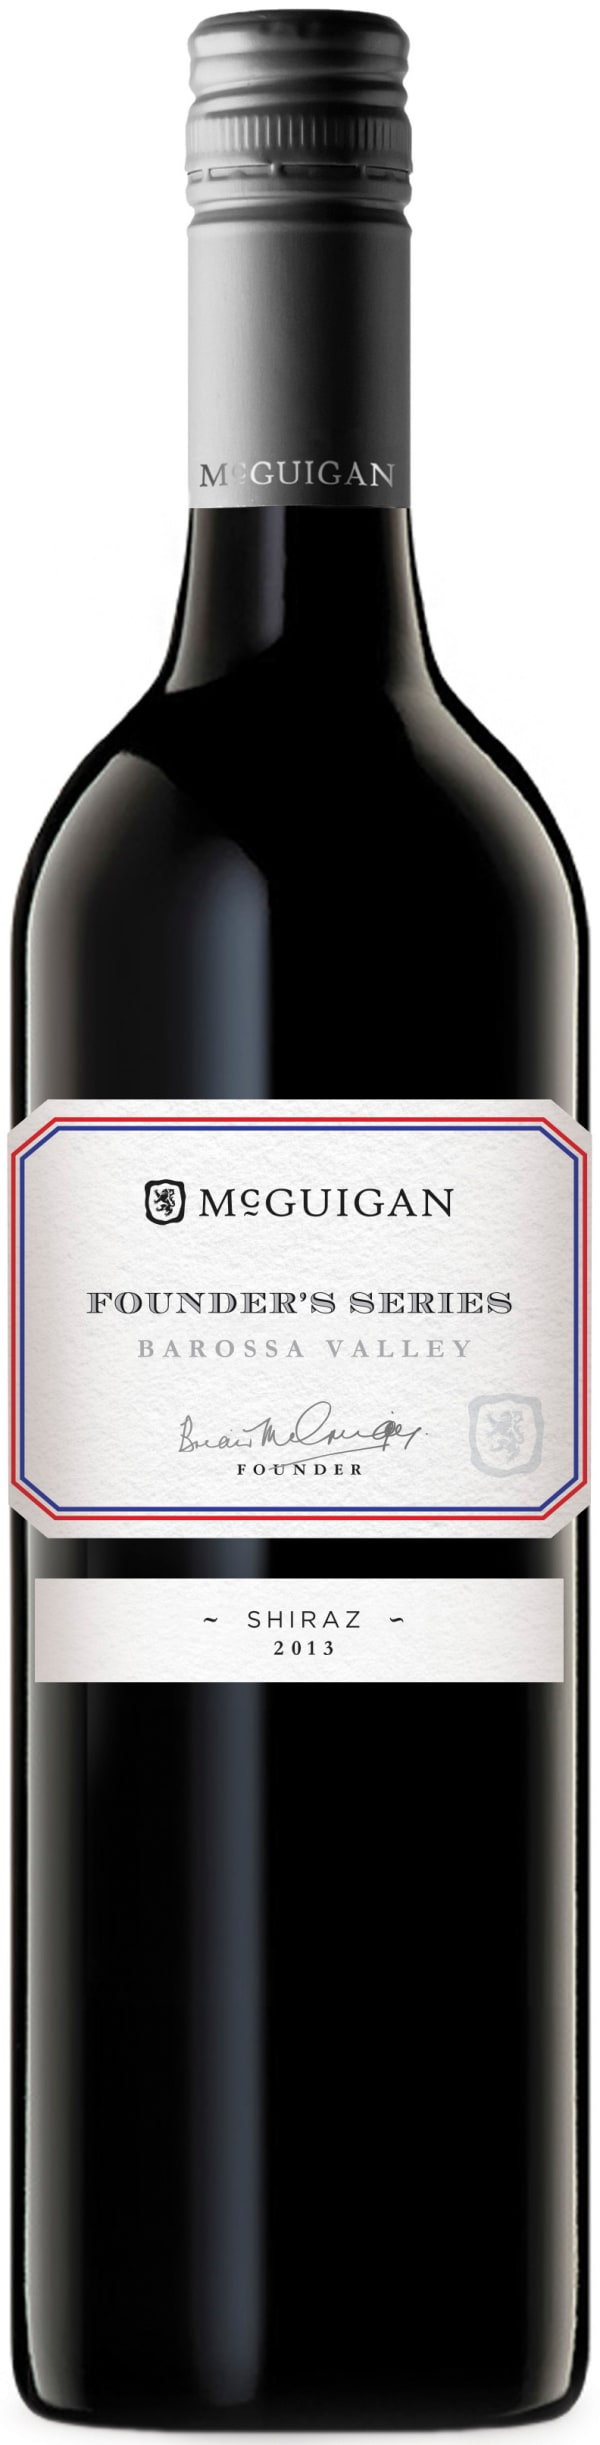 McGuigan Founder's Shiraz 2014